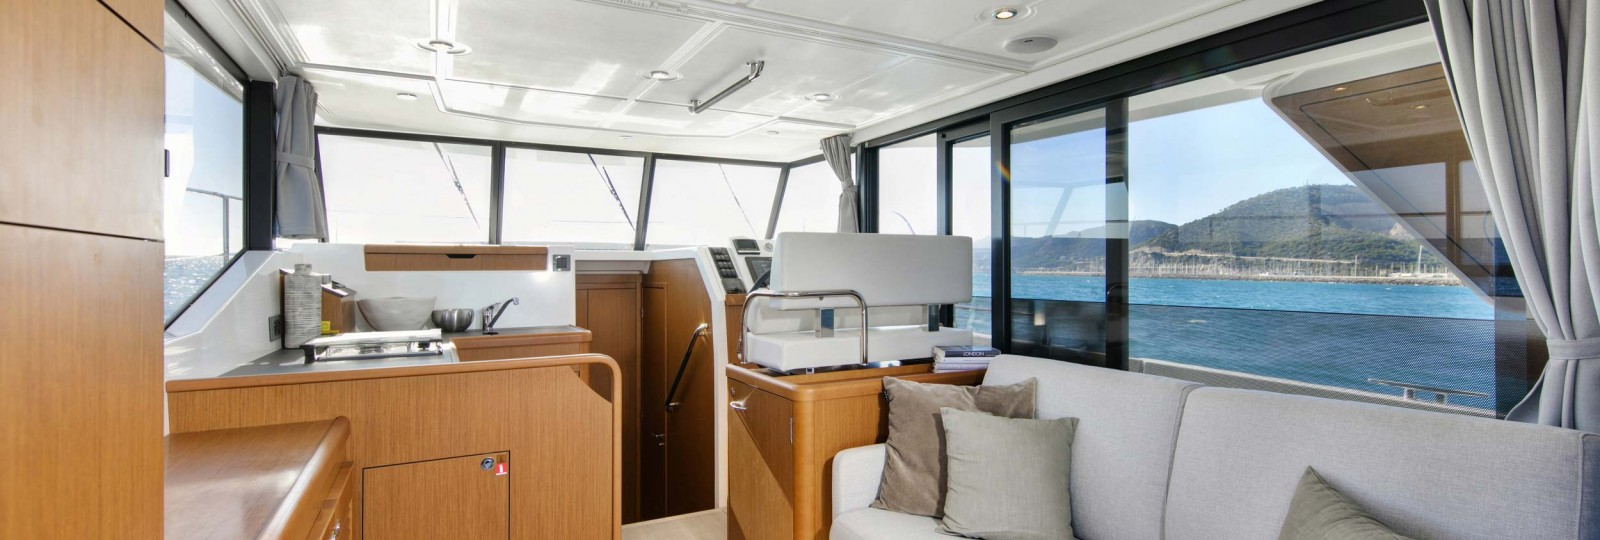 Beneteau Swift Trawler 35 galley